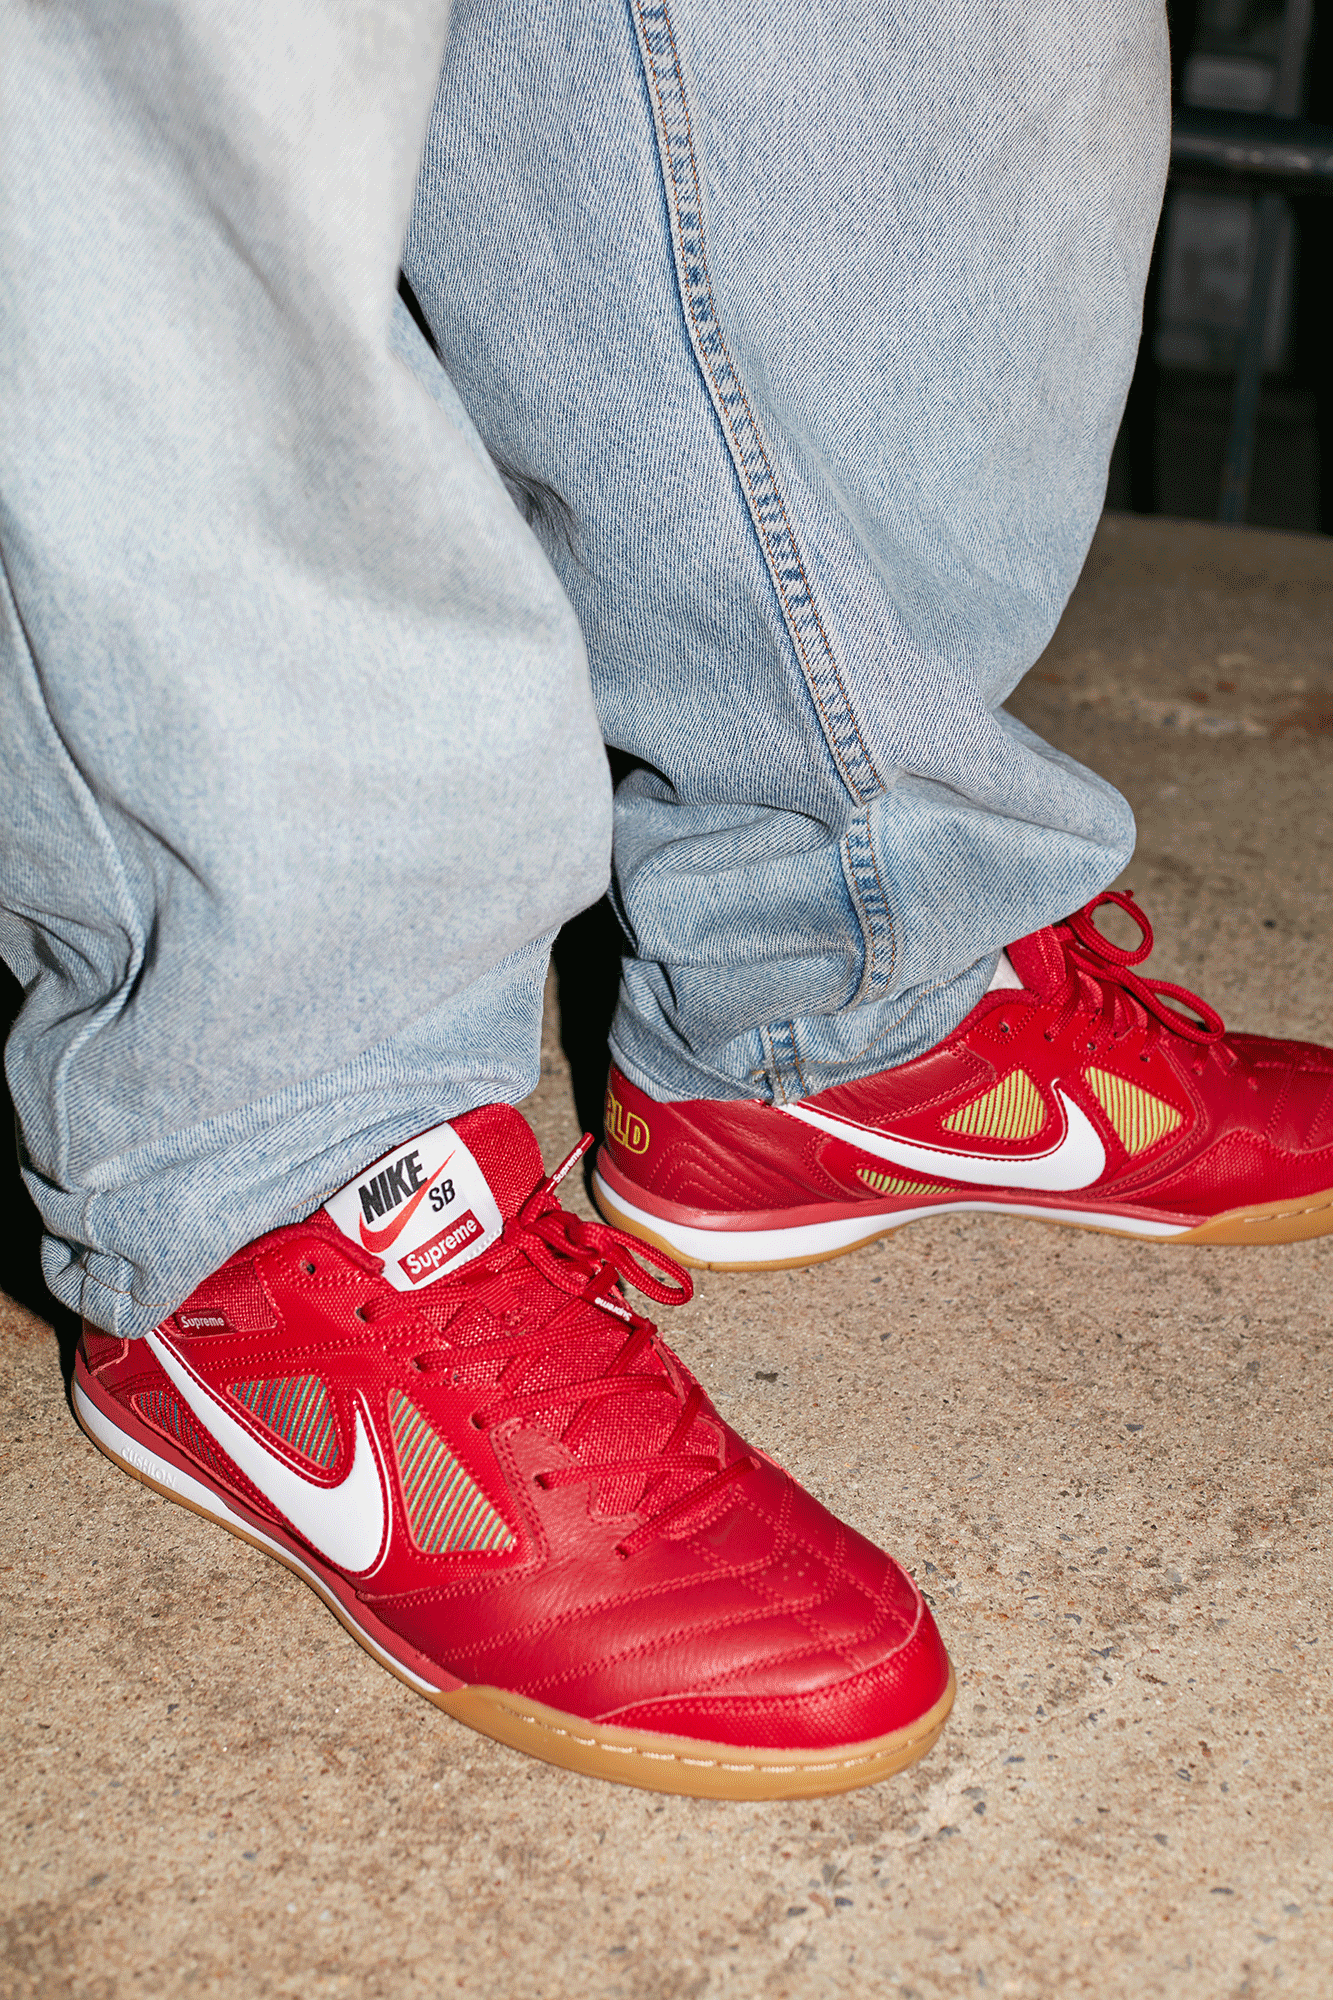 utterly stylish low price sale 100% top quality Supreme Works Up a New Version of the Nike SB Gato | The Source